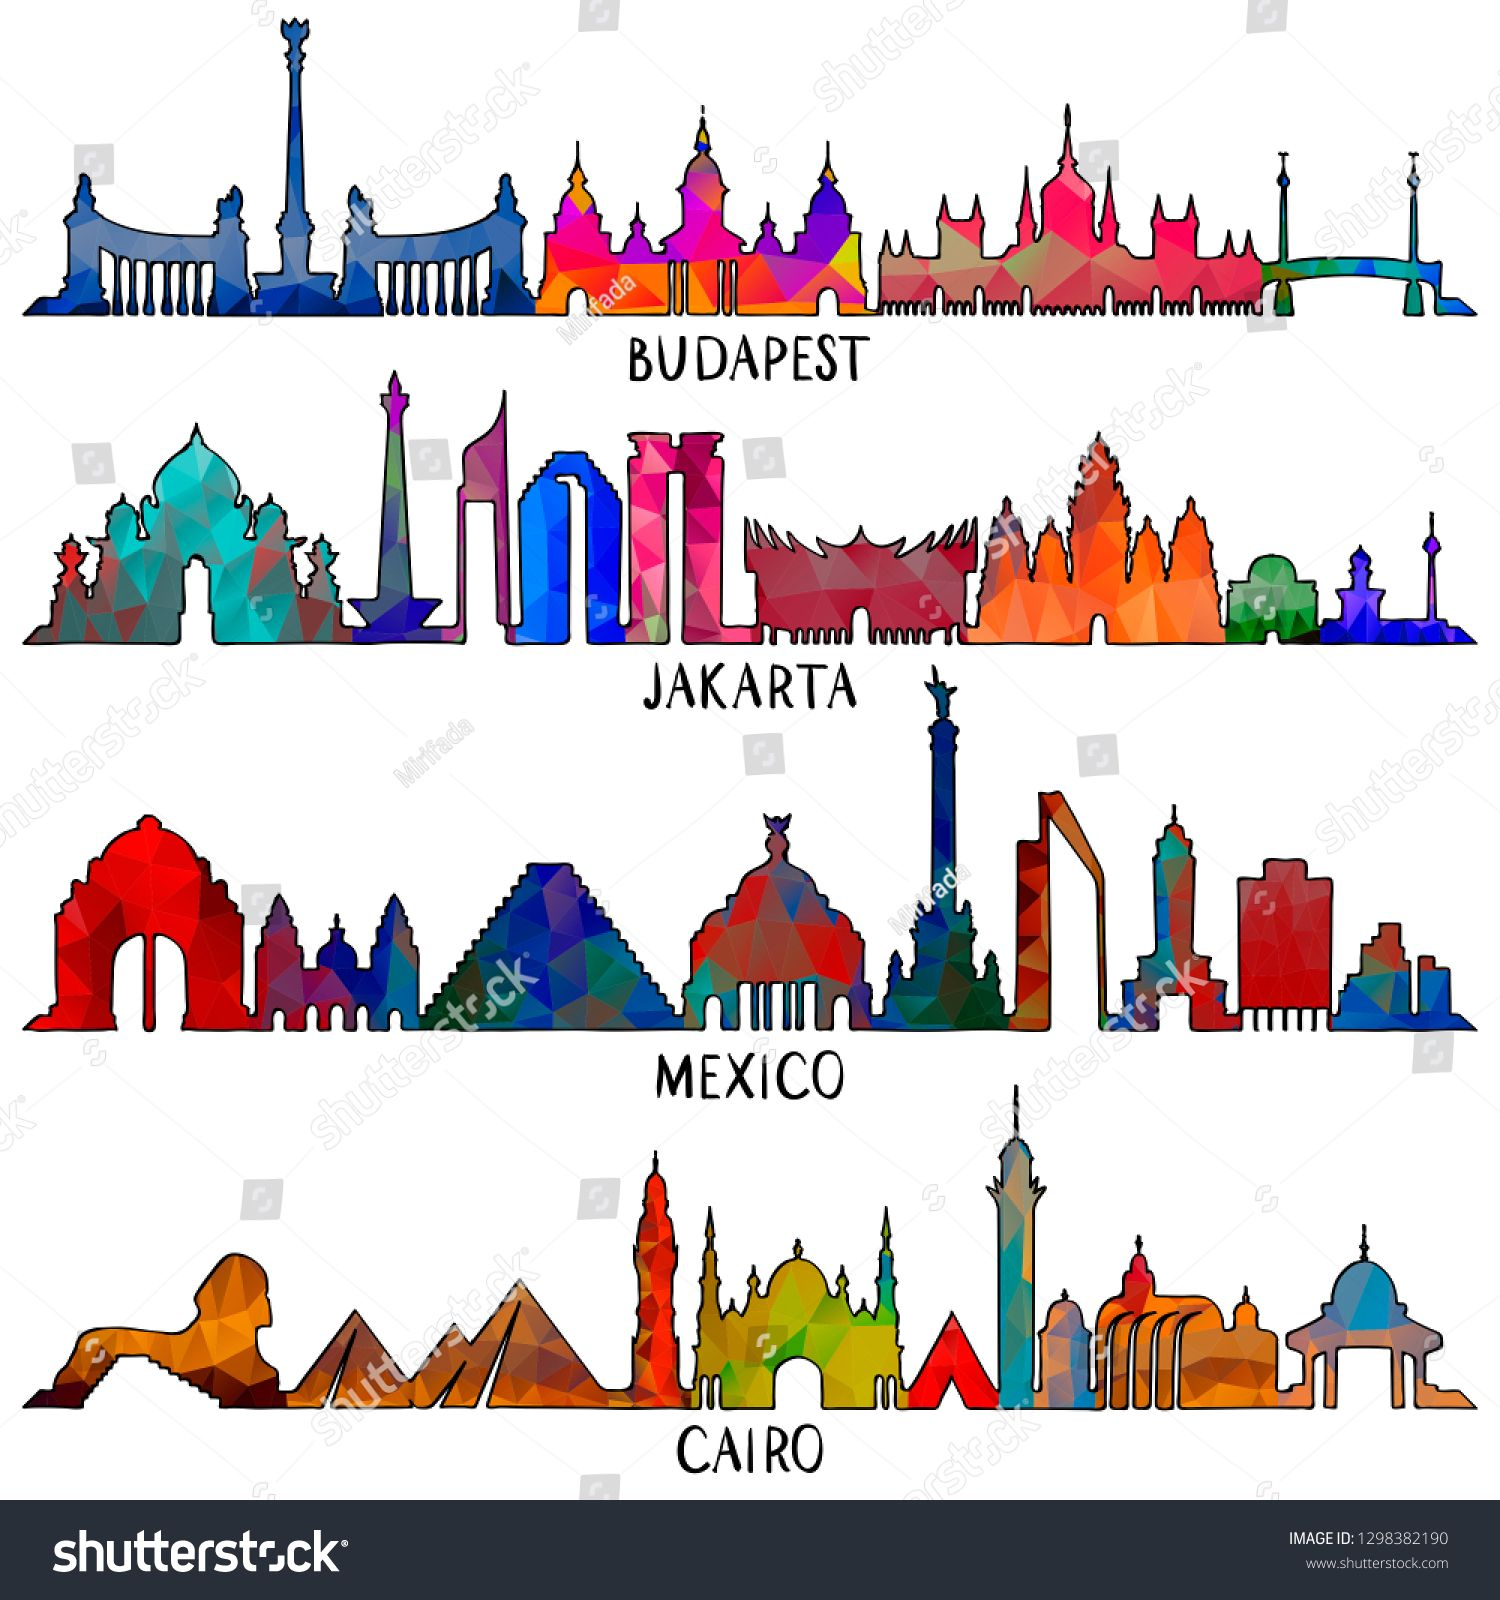 Travel and tourism line vector illustration. Mexico, Budapest, Jakarta and Cairo ,